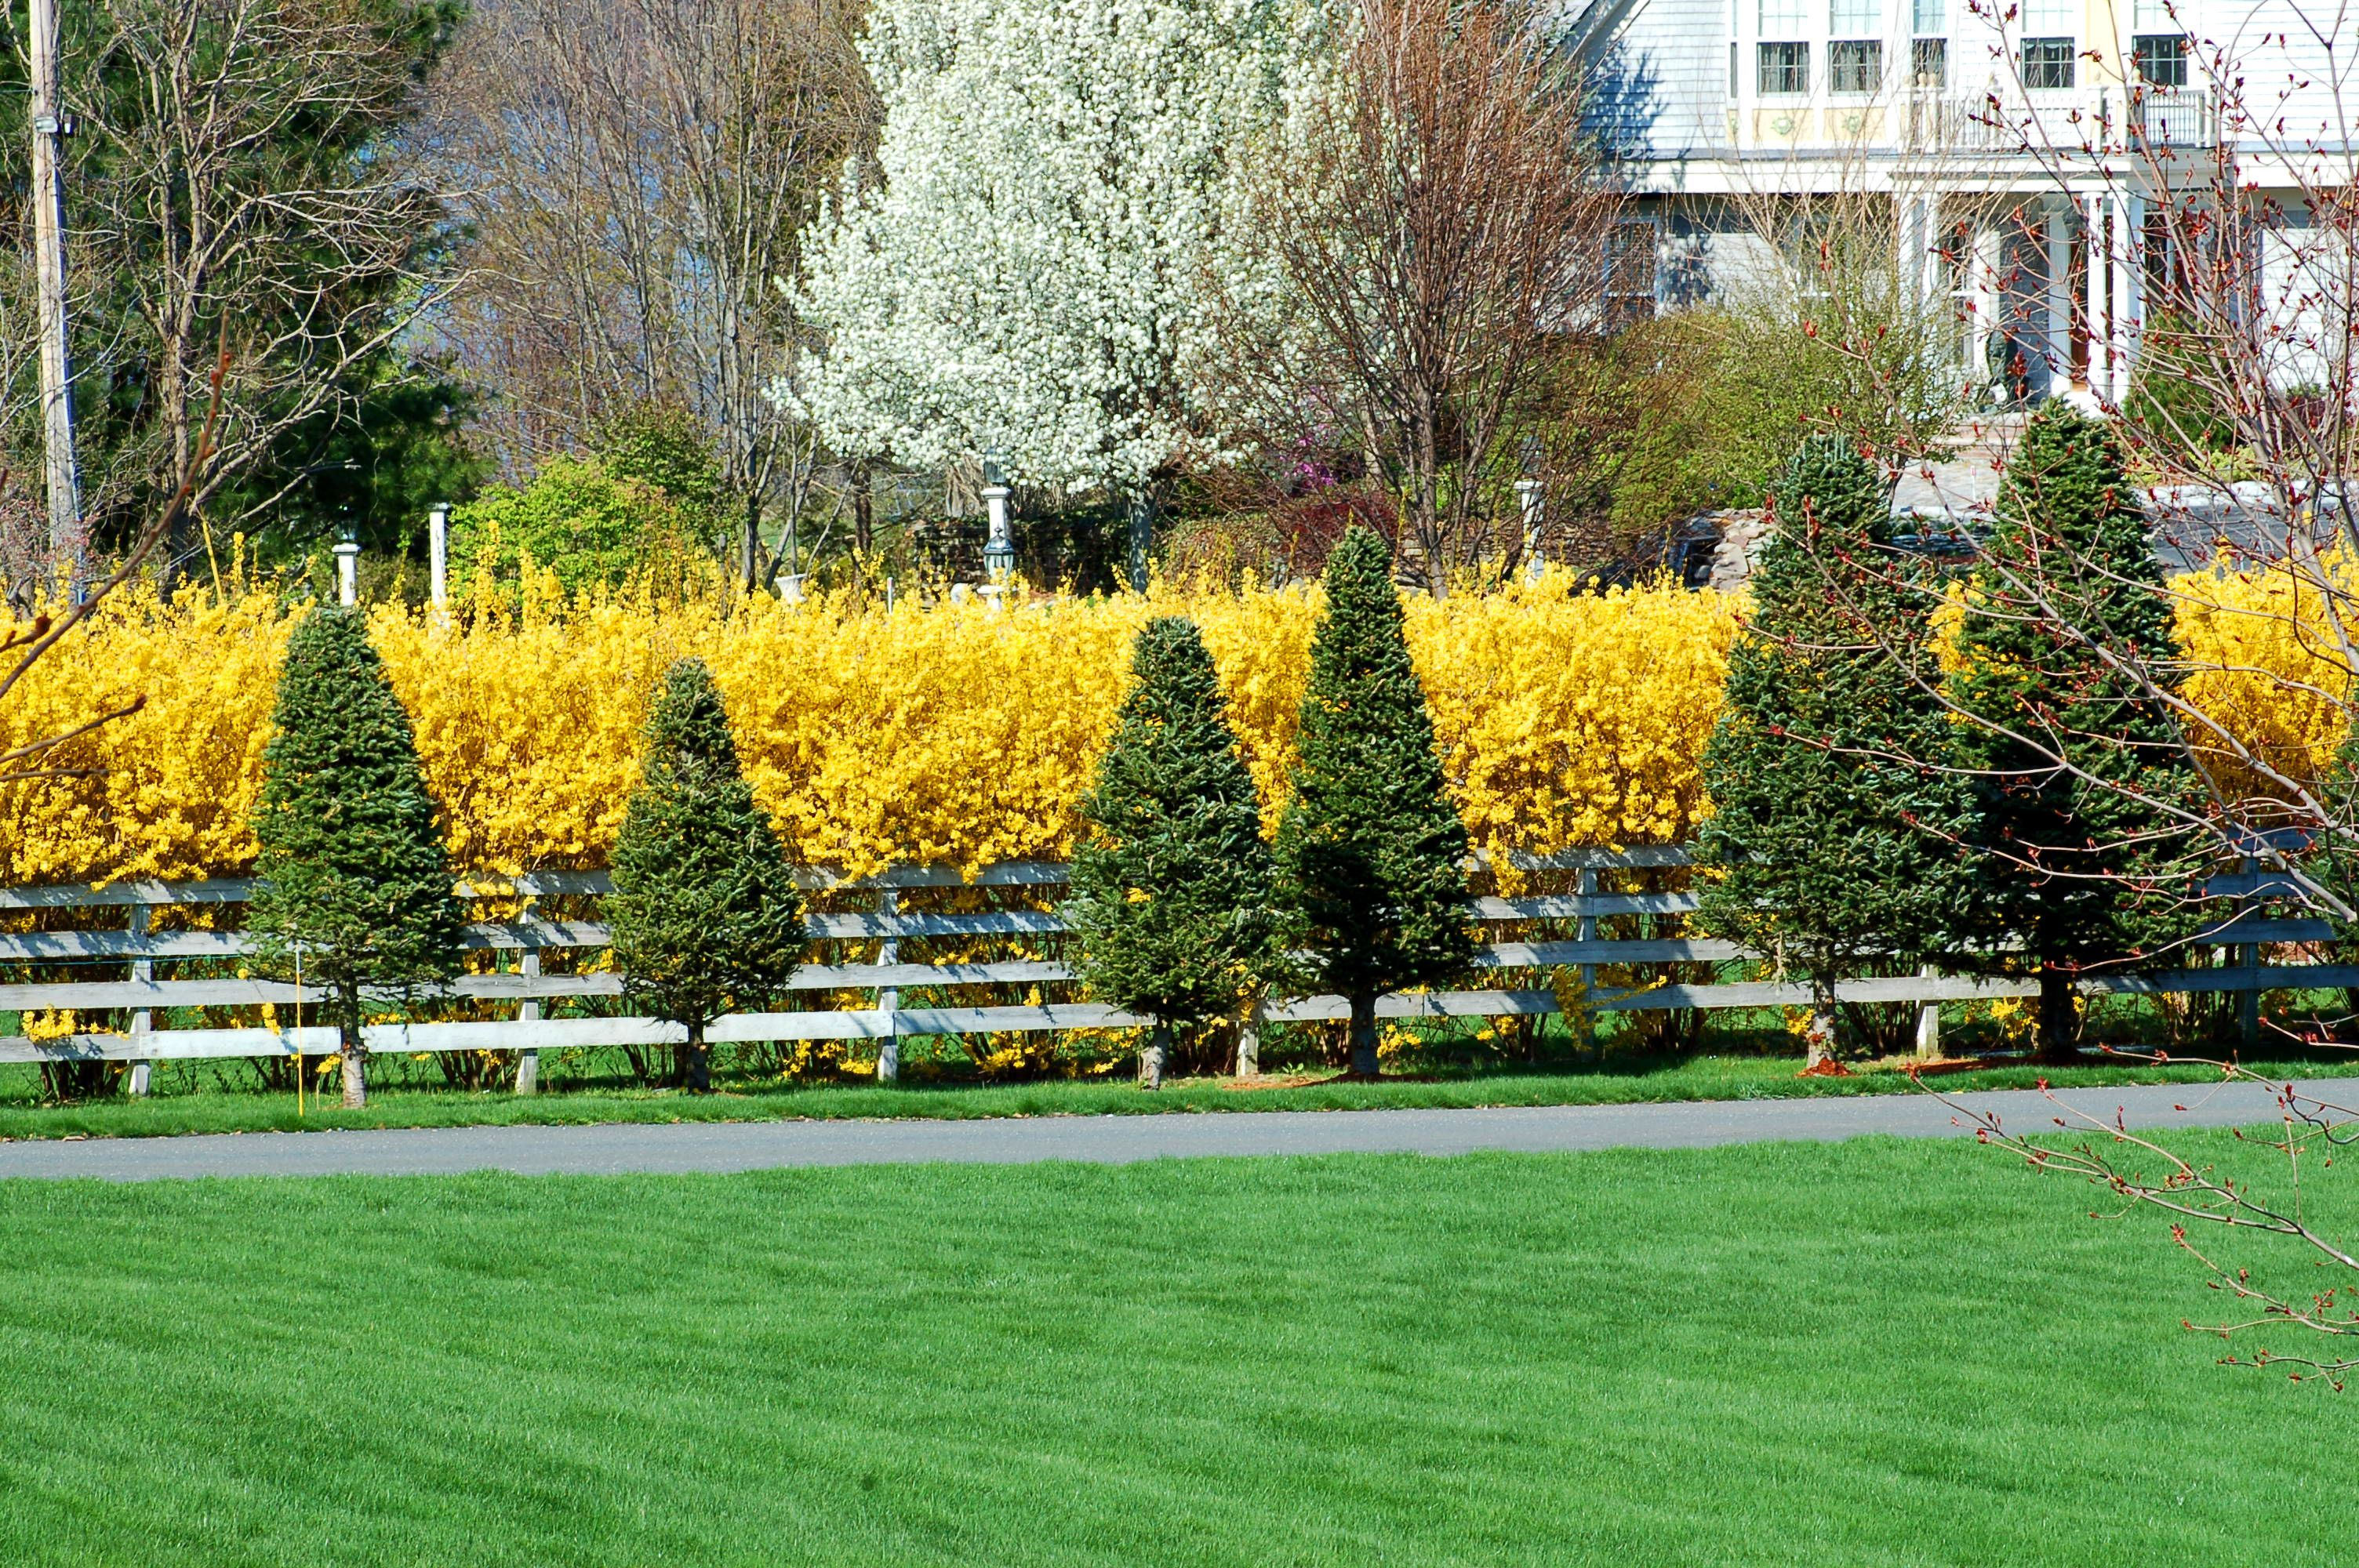 Plant Forsythia Bushes For Yellow Blooms That Herald Spring